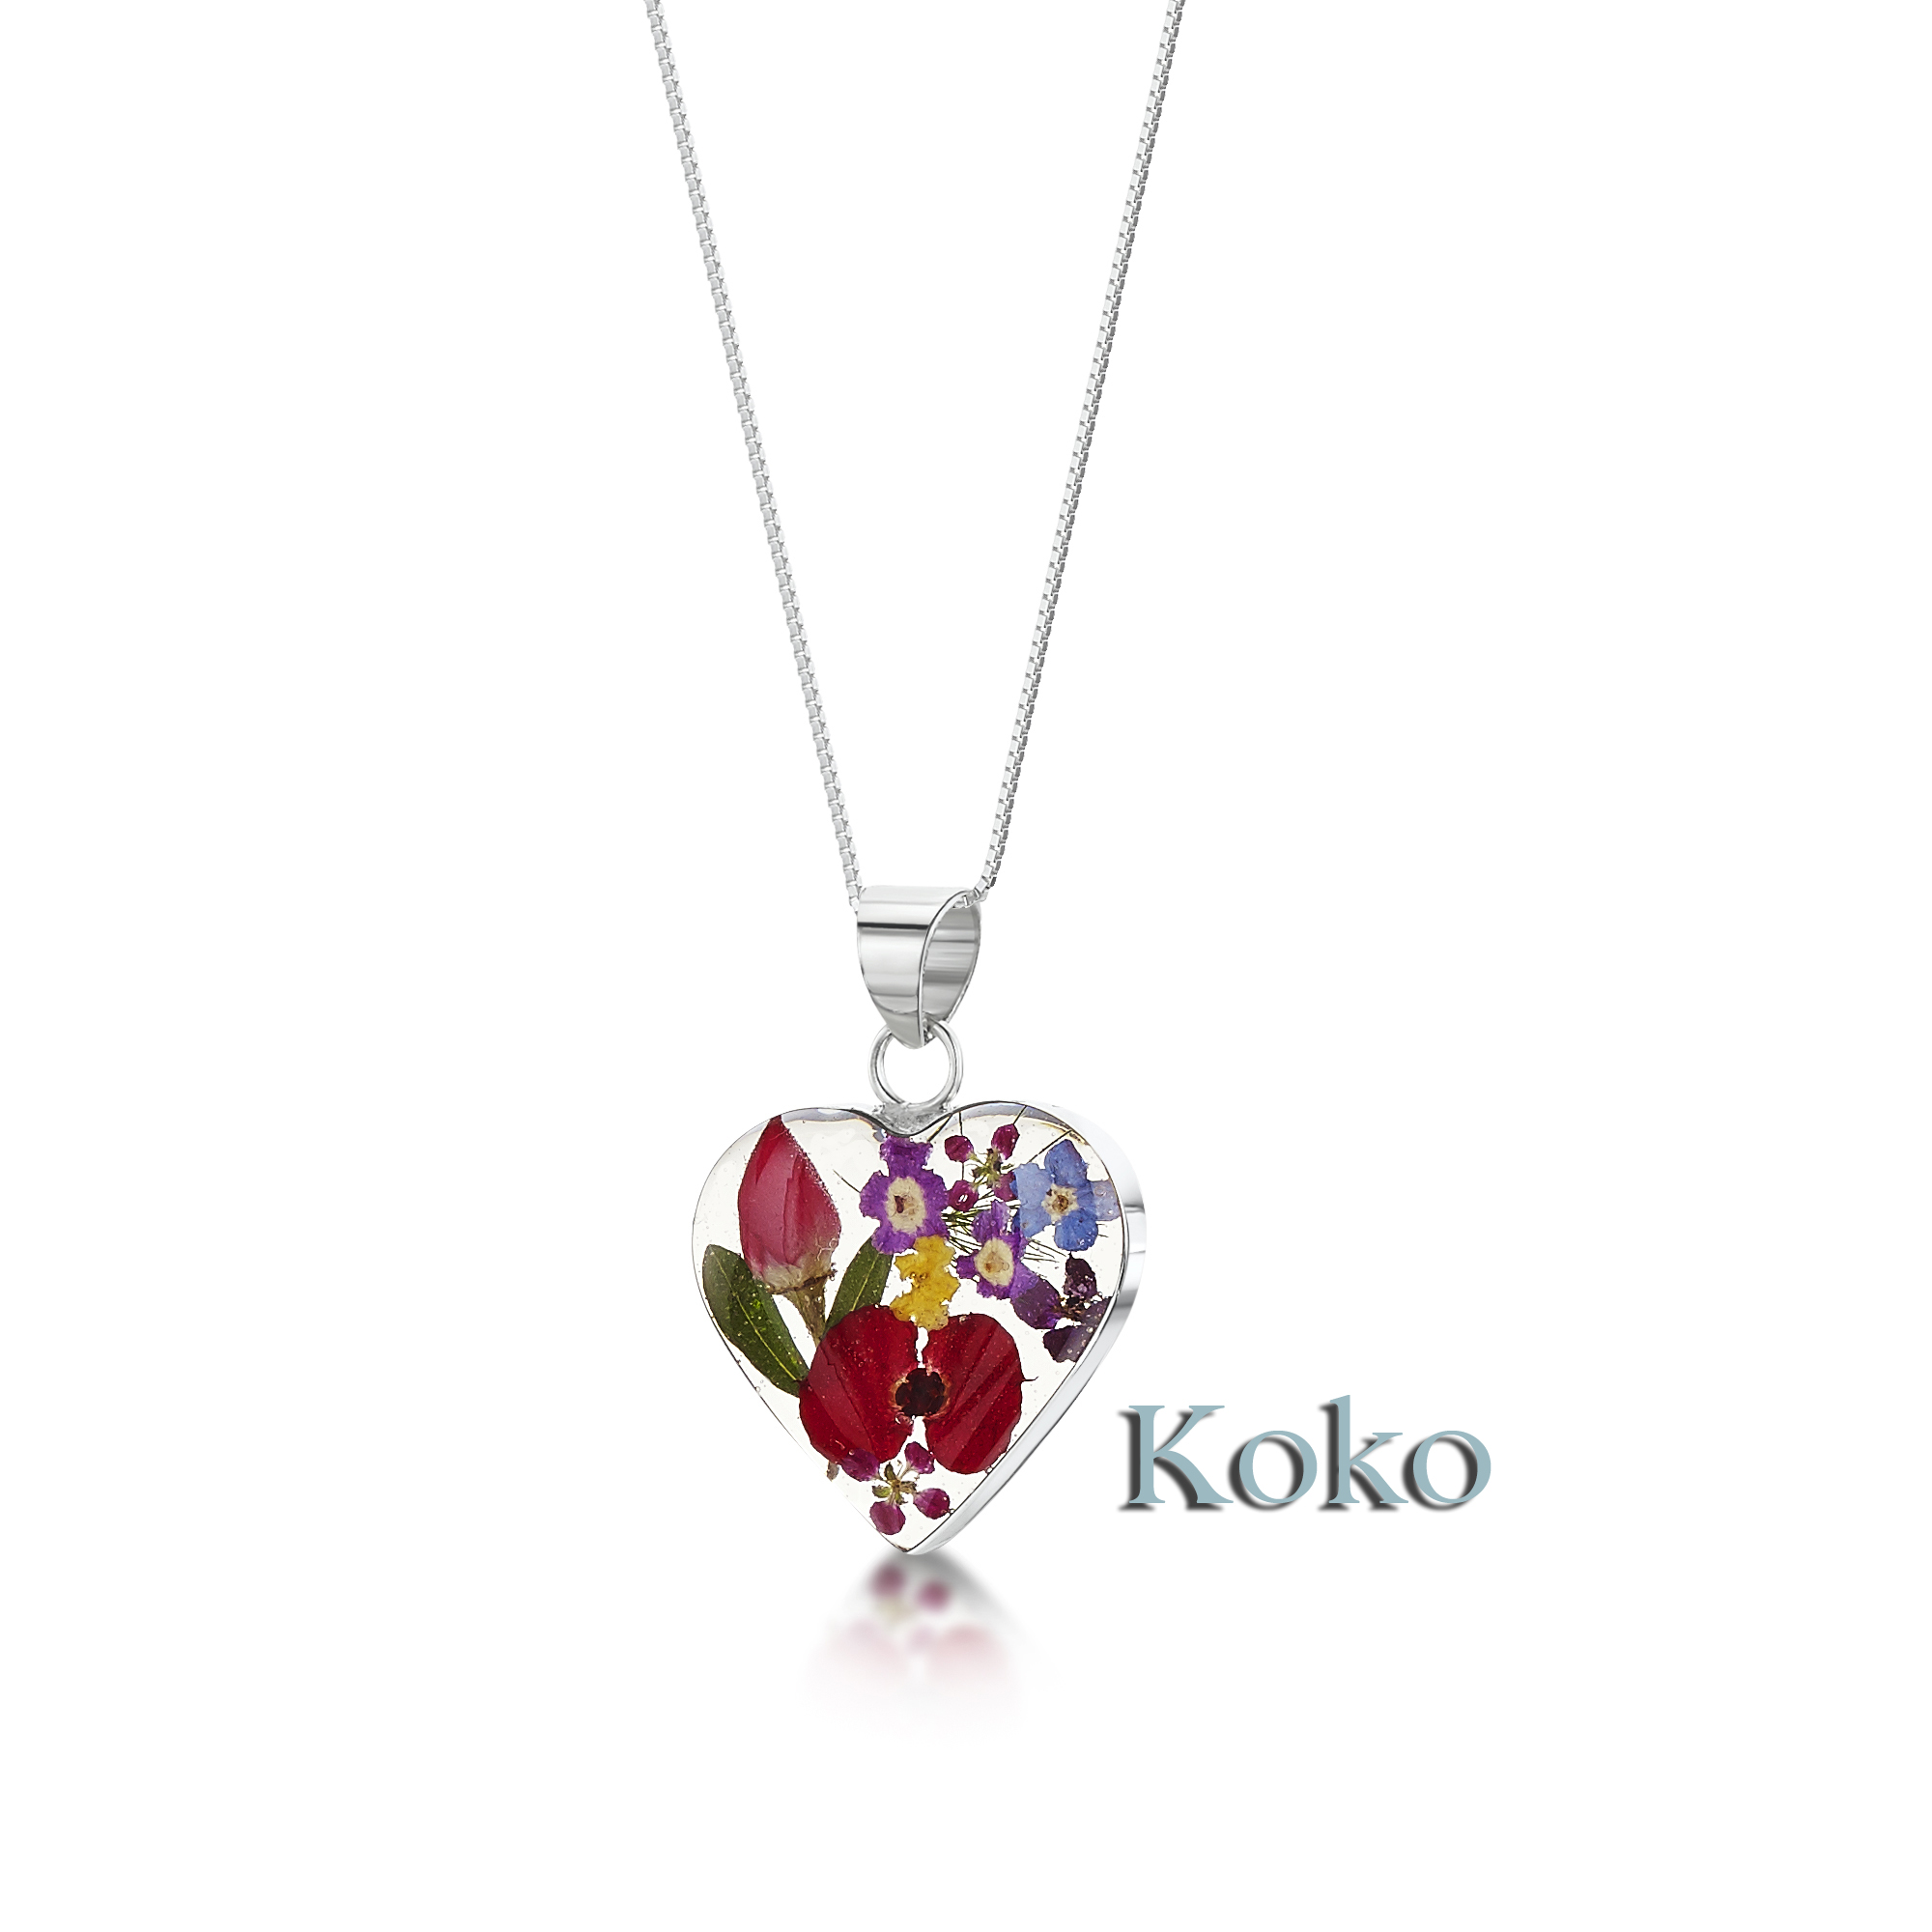 Real flower jewellery UK